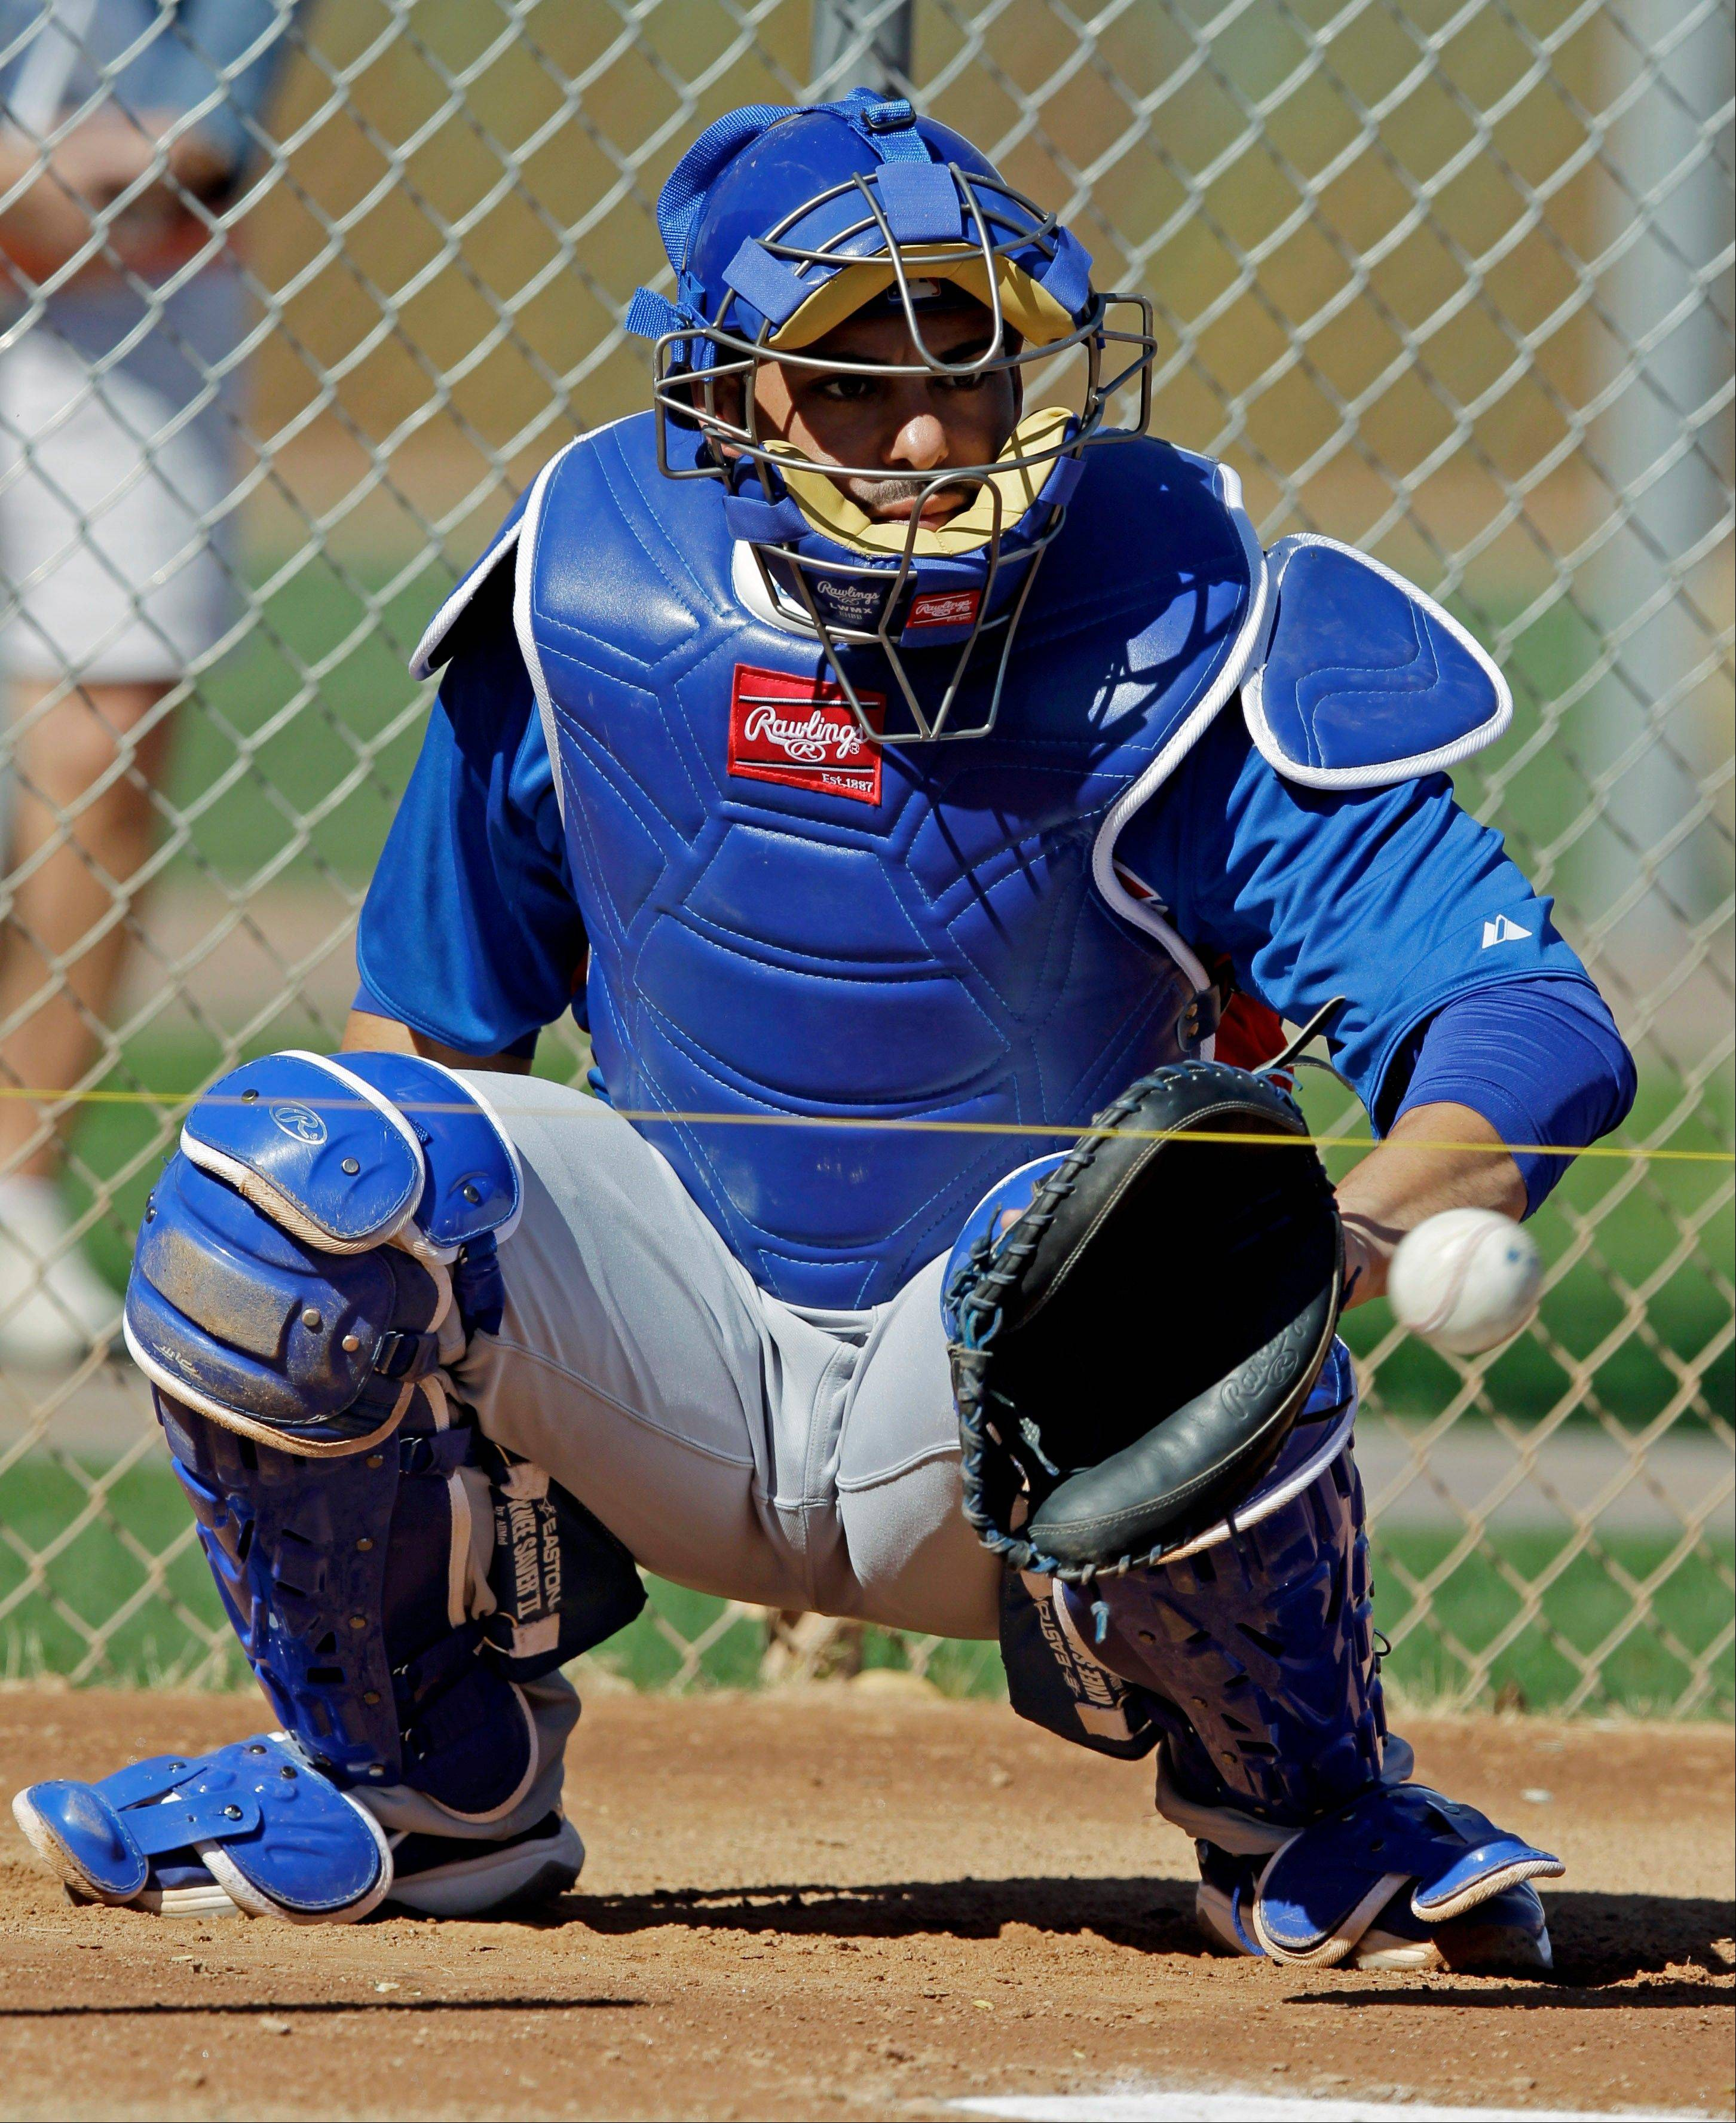 Cubs catcher Geovany Soto gets in some work in Mesa, Ariz., with some spring training drills.